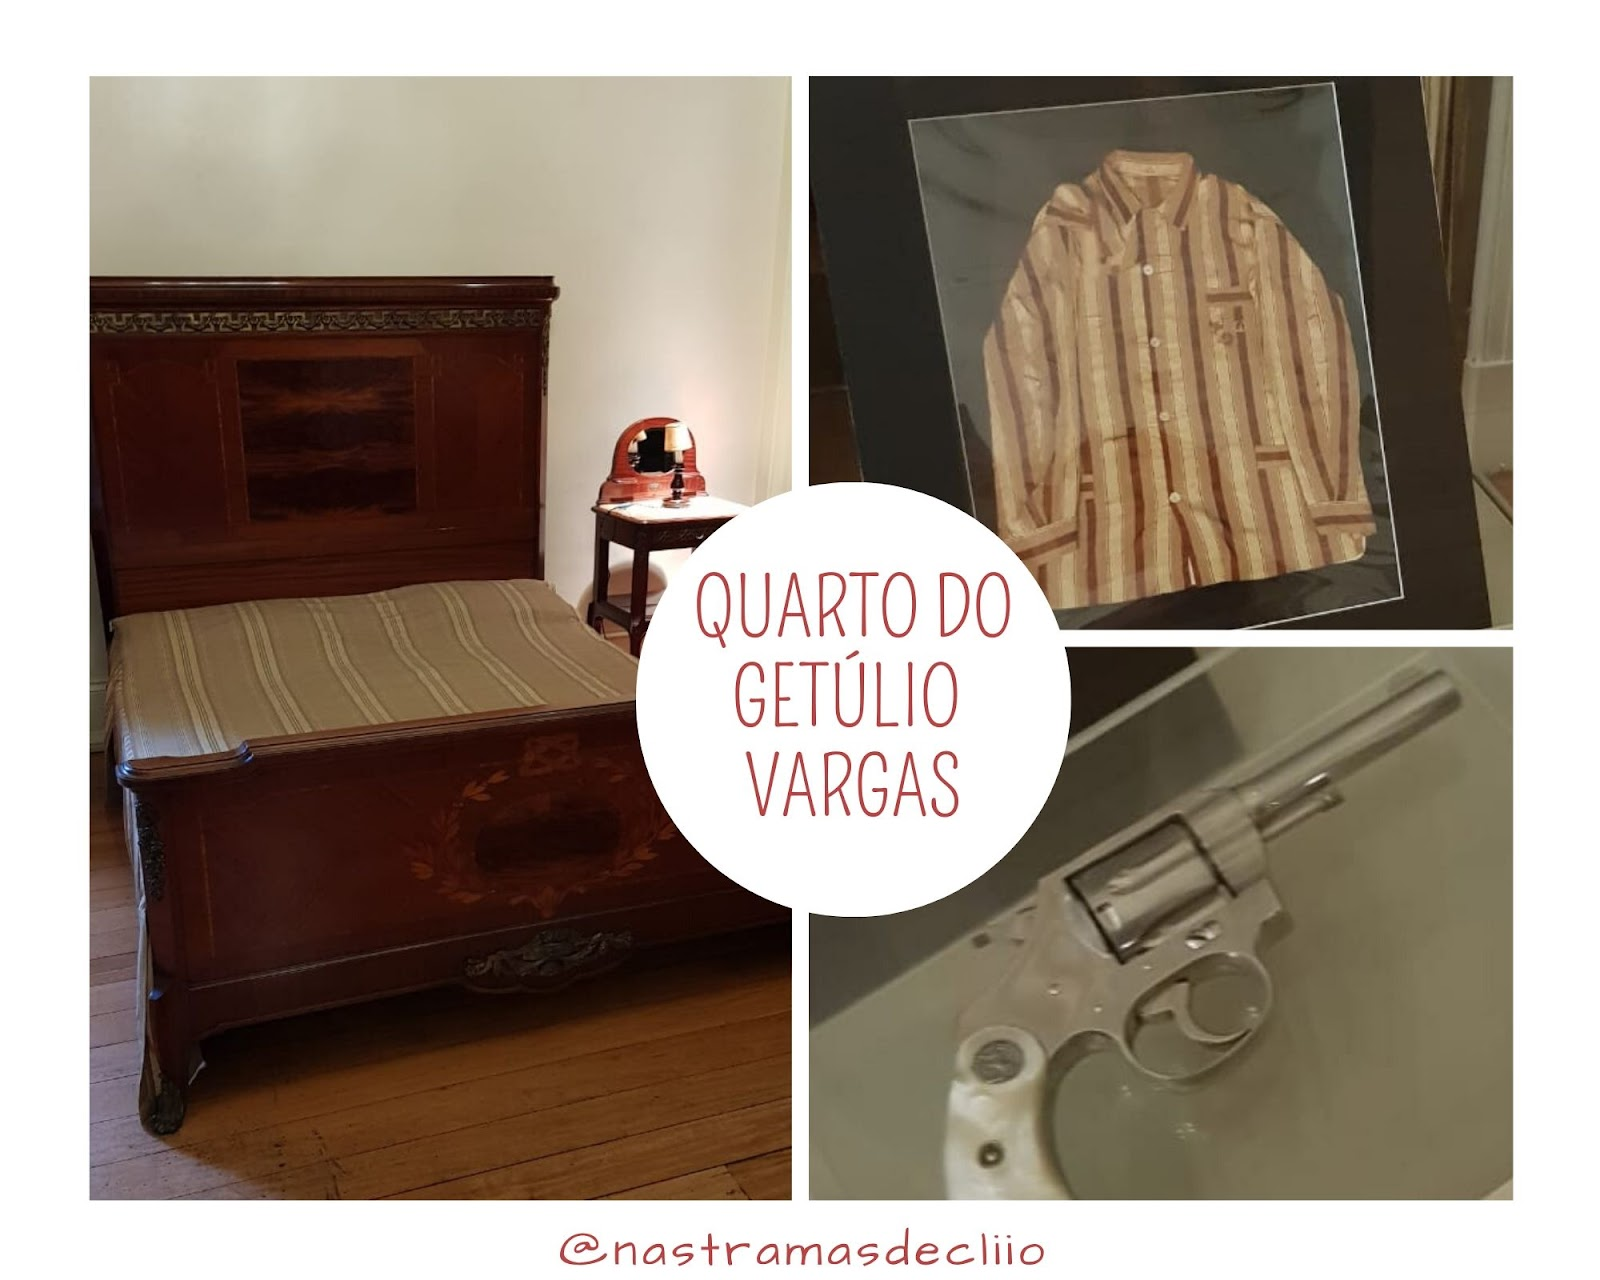 Fotografias do quarto de Getúlio Vargas no Palácio do Catete.